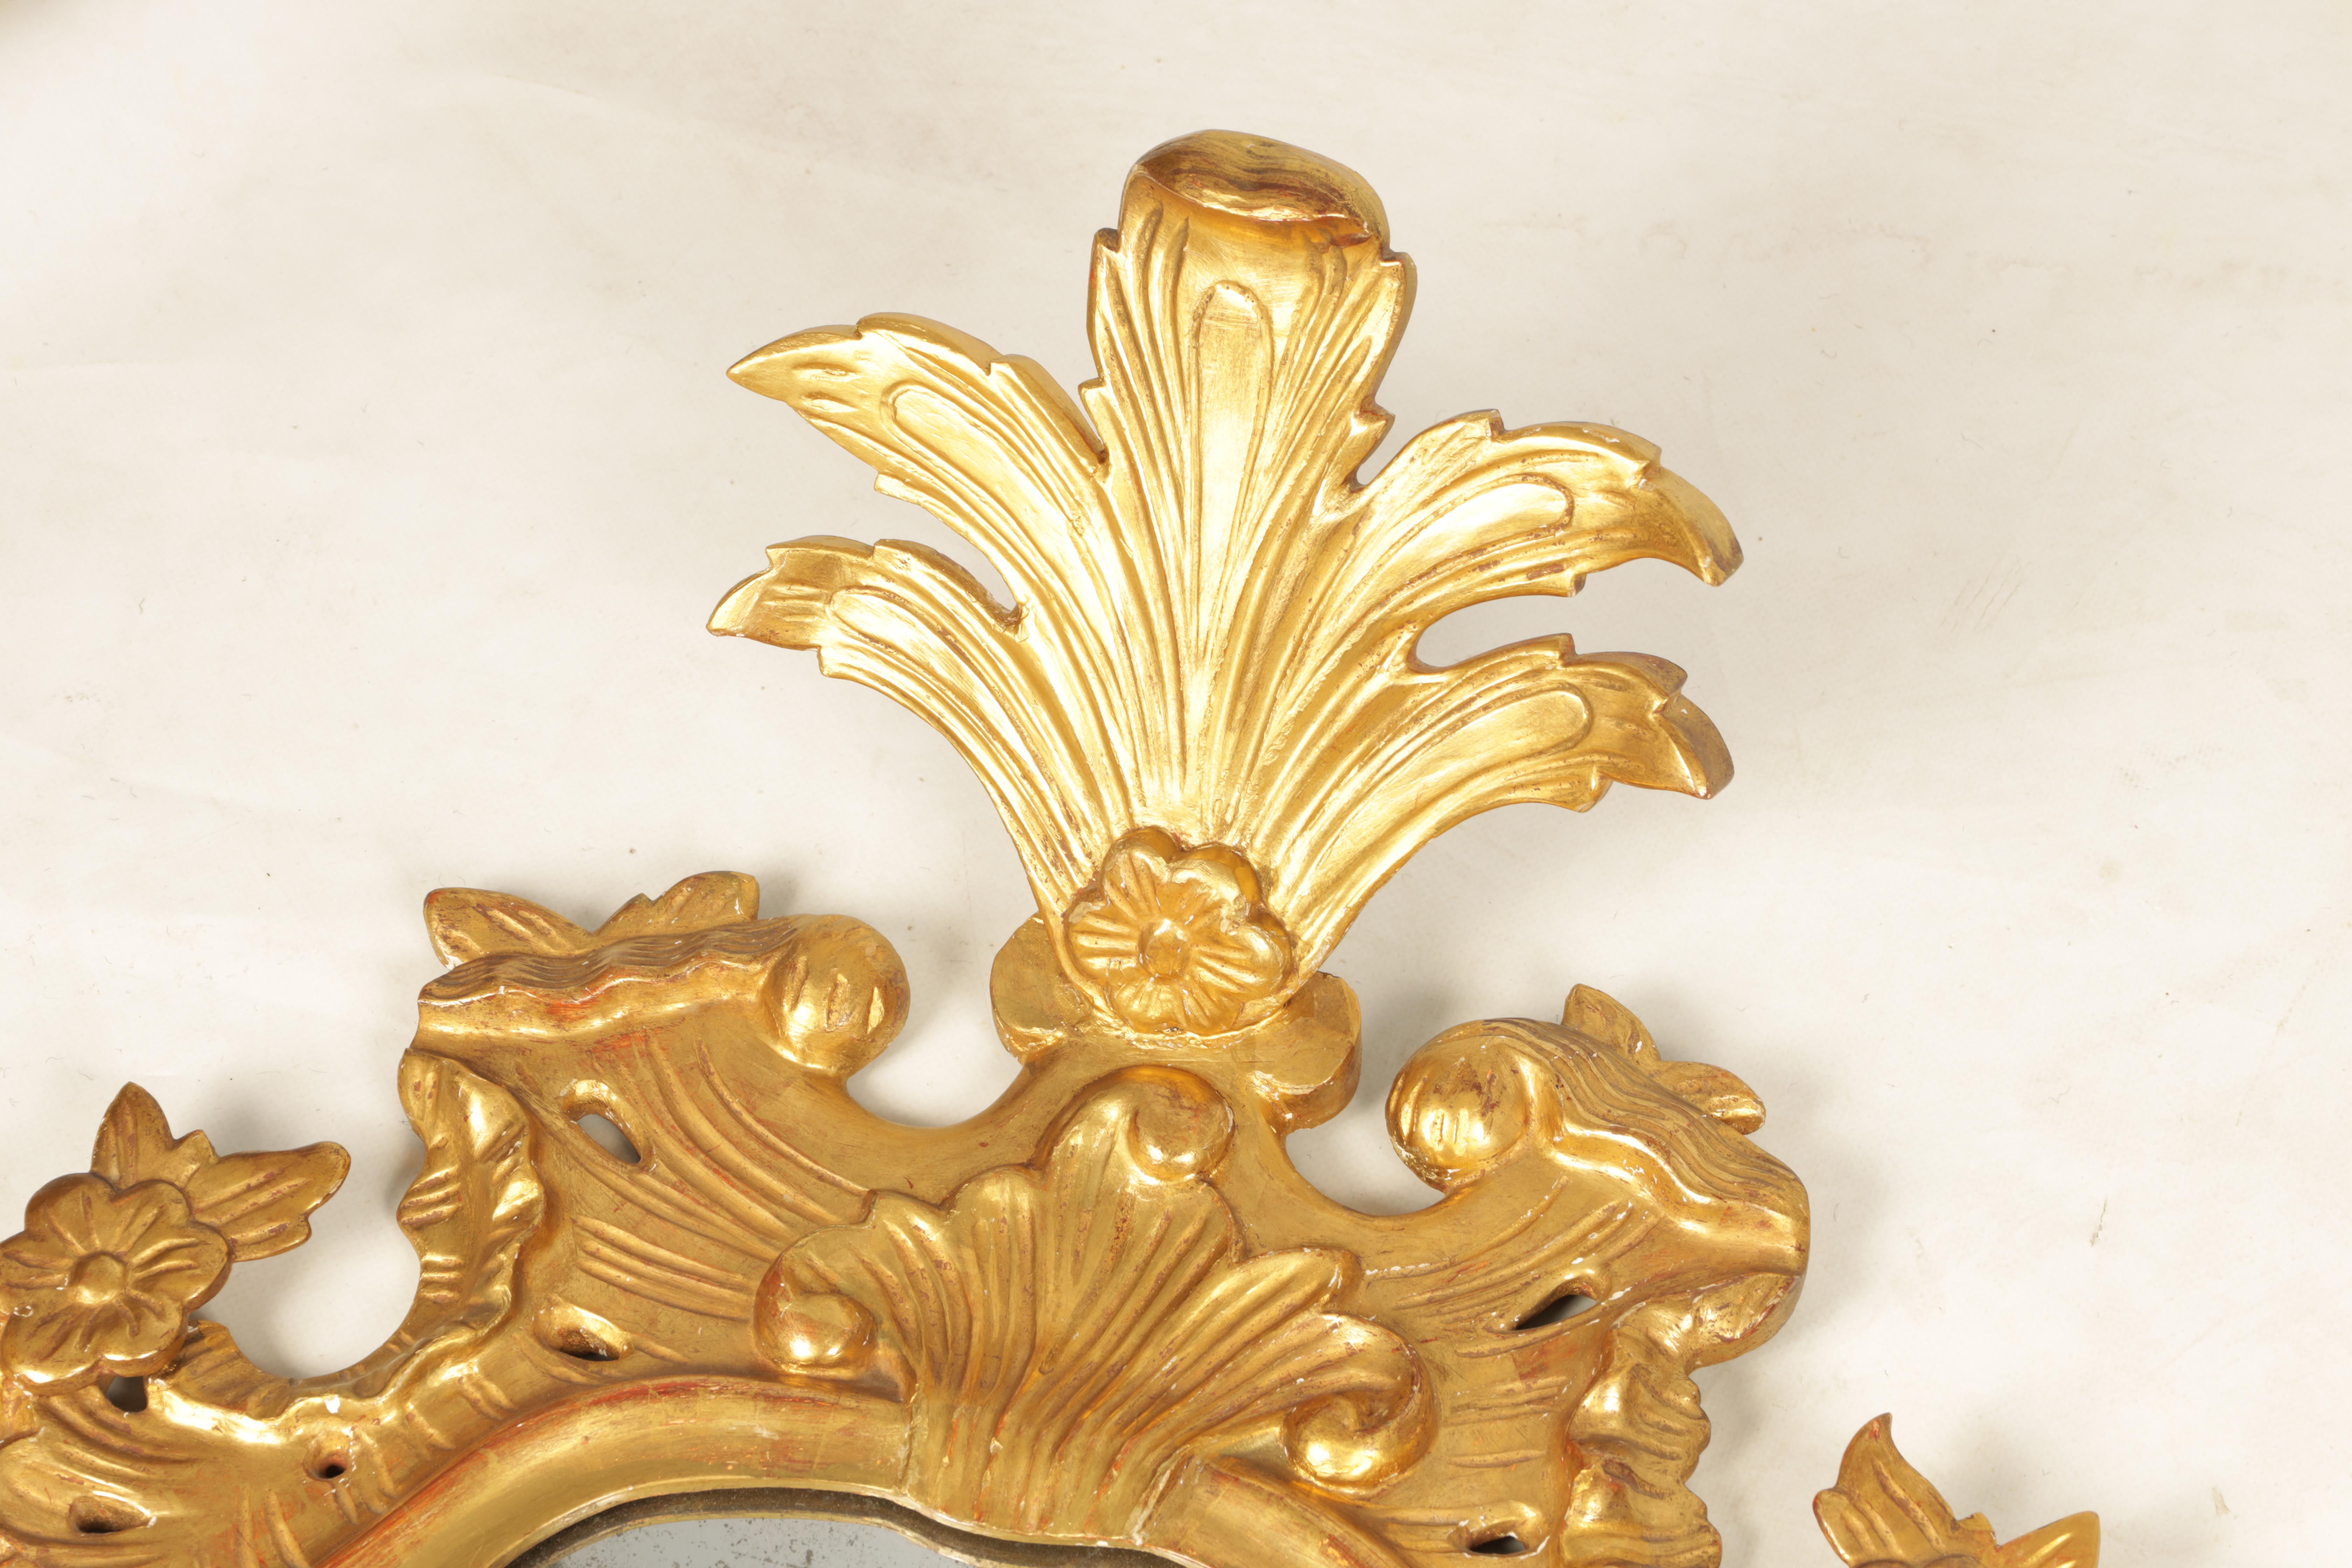 A PAIR OF 19TH CENTURY CARVED GILT WOOD ITALIAN FLORENTINE MIRRORS with leaf and shell carved frames - Image 3 of 8